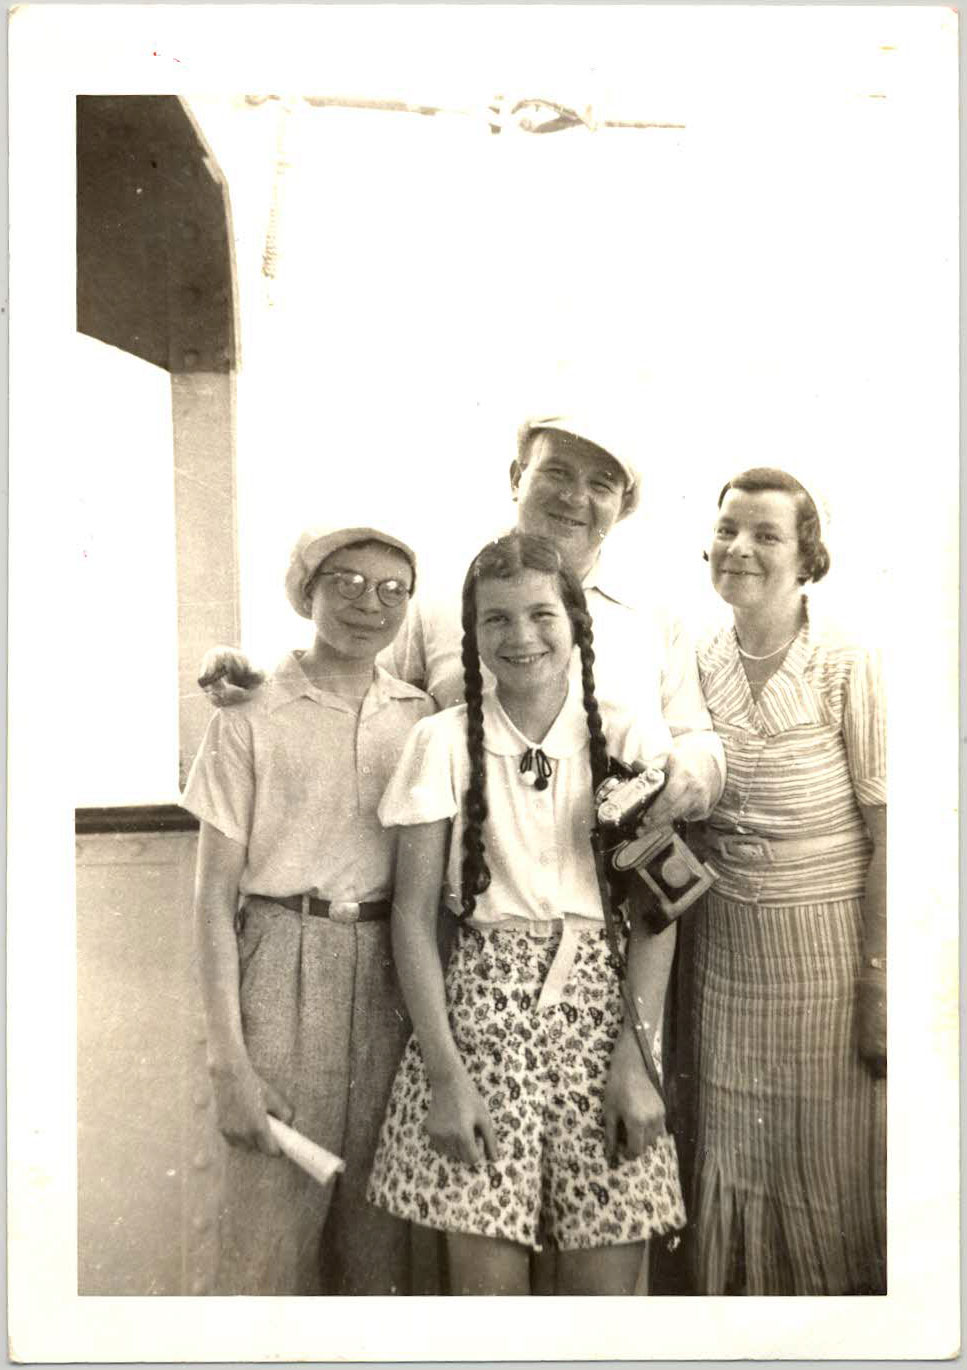 The Grunwald family (from left): Ernest, Lotte, Fred, and Trude. Courtesy of Peggy Cooper.